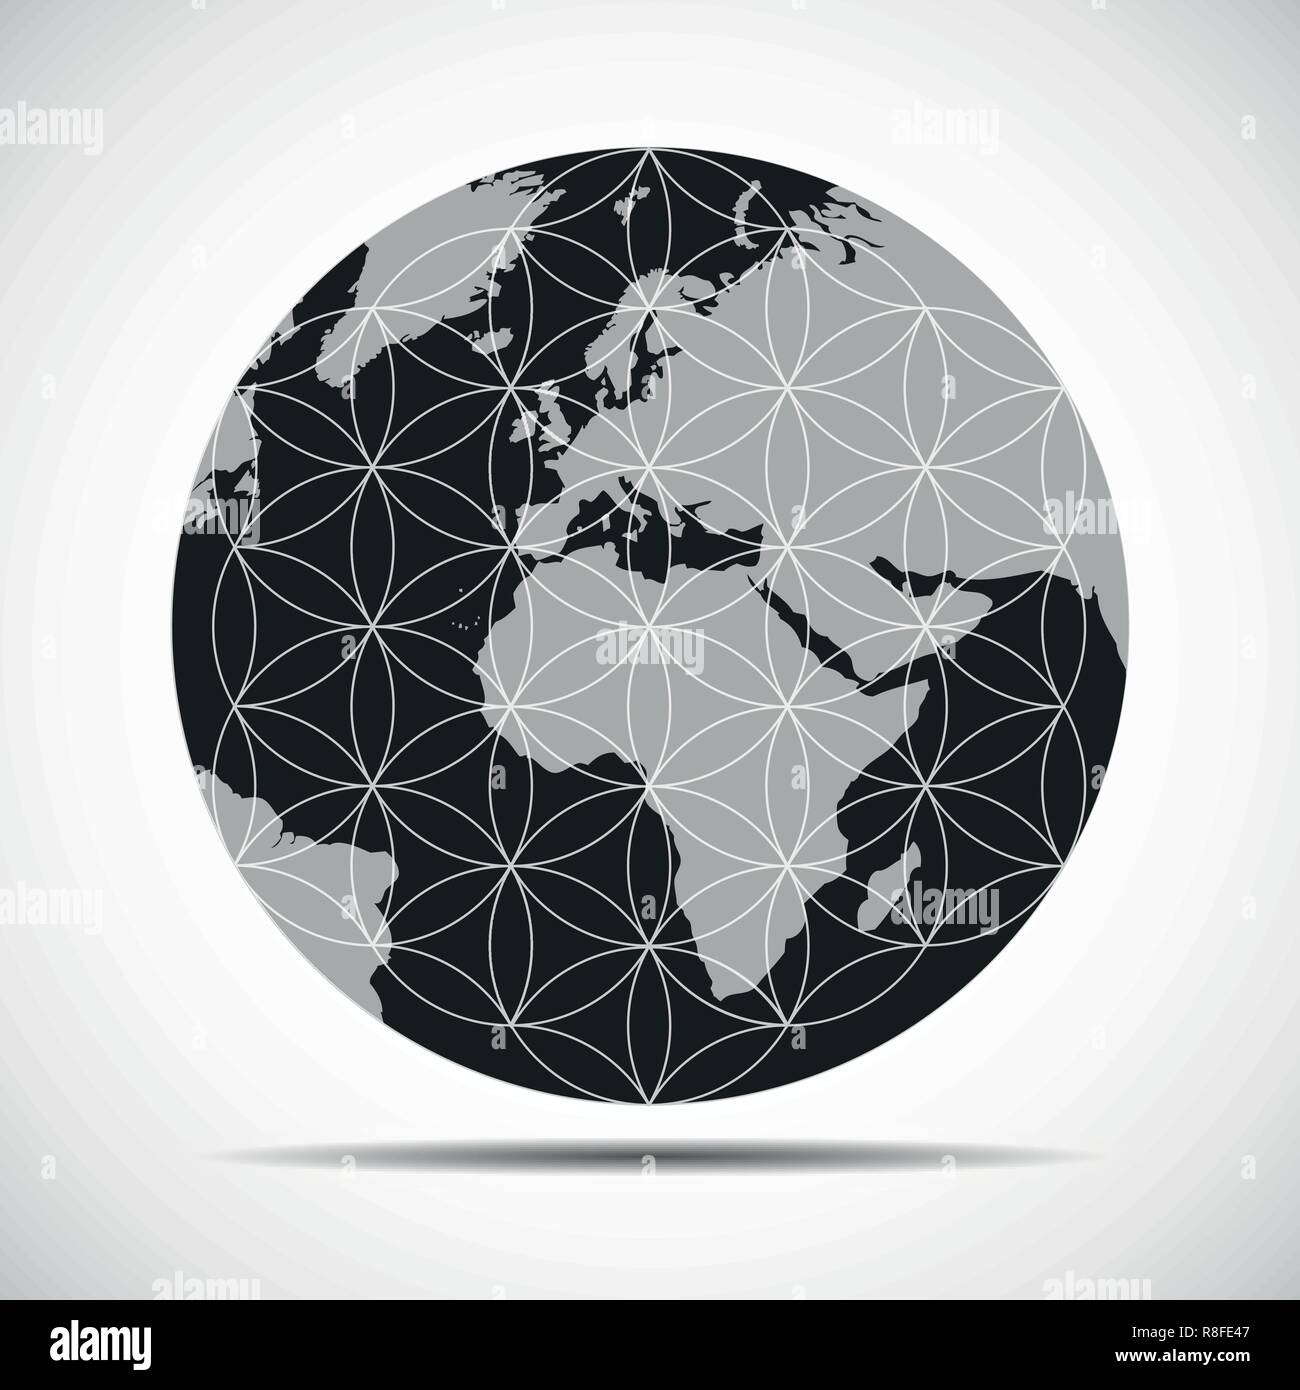 flower of life in the globe earht world vector illustration EPS10 - Stock Image